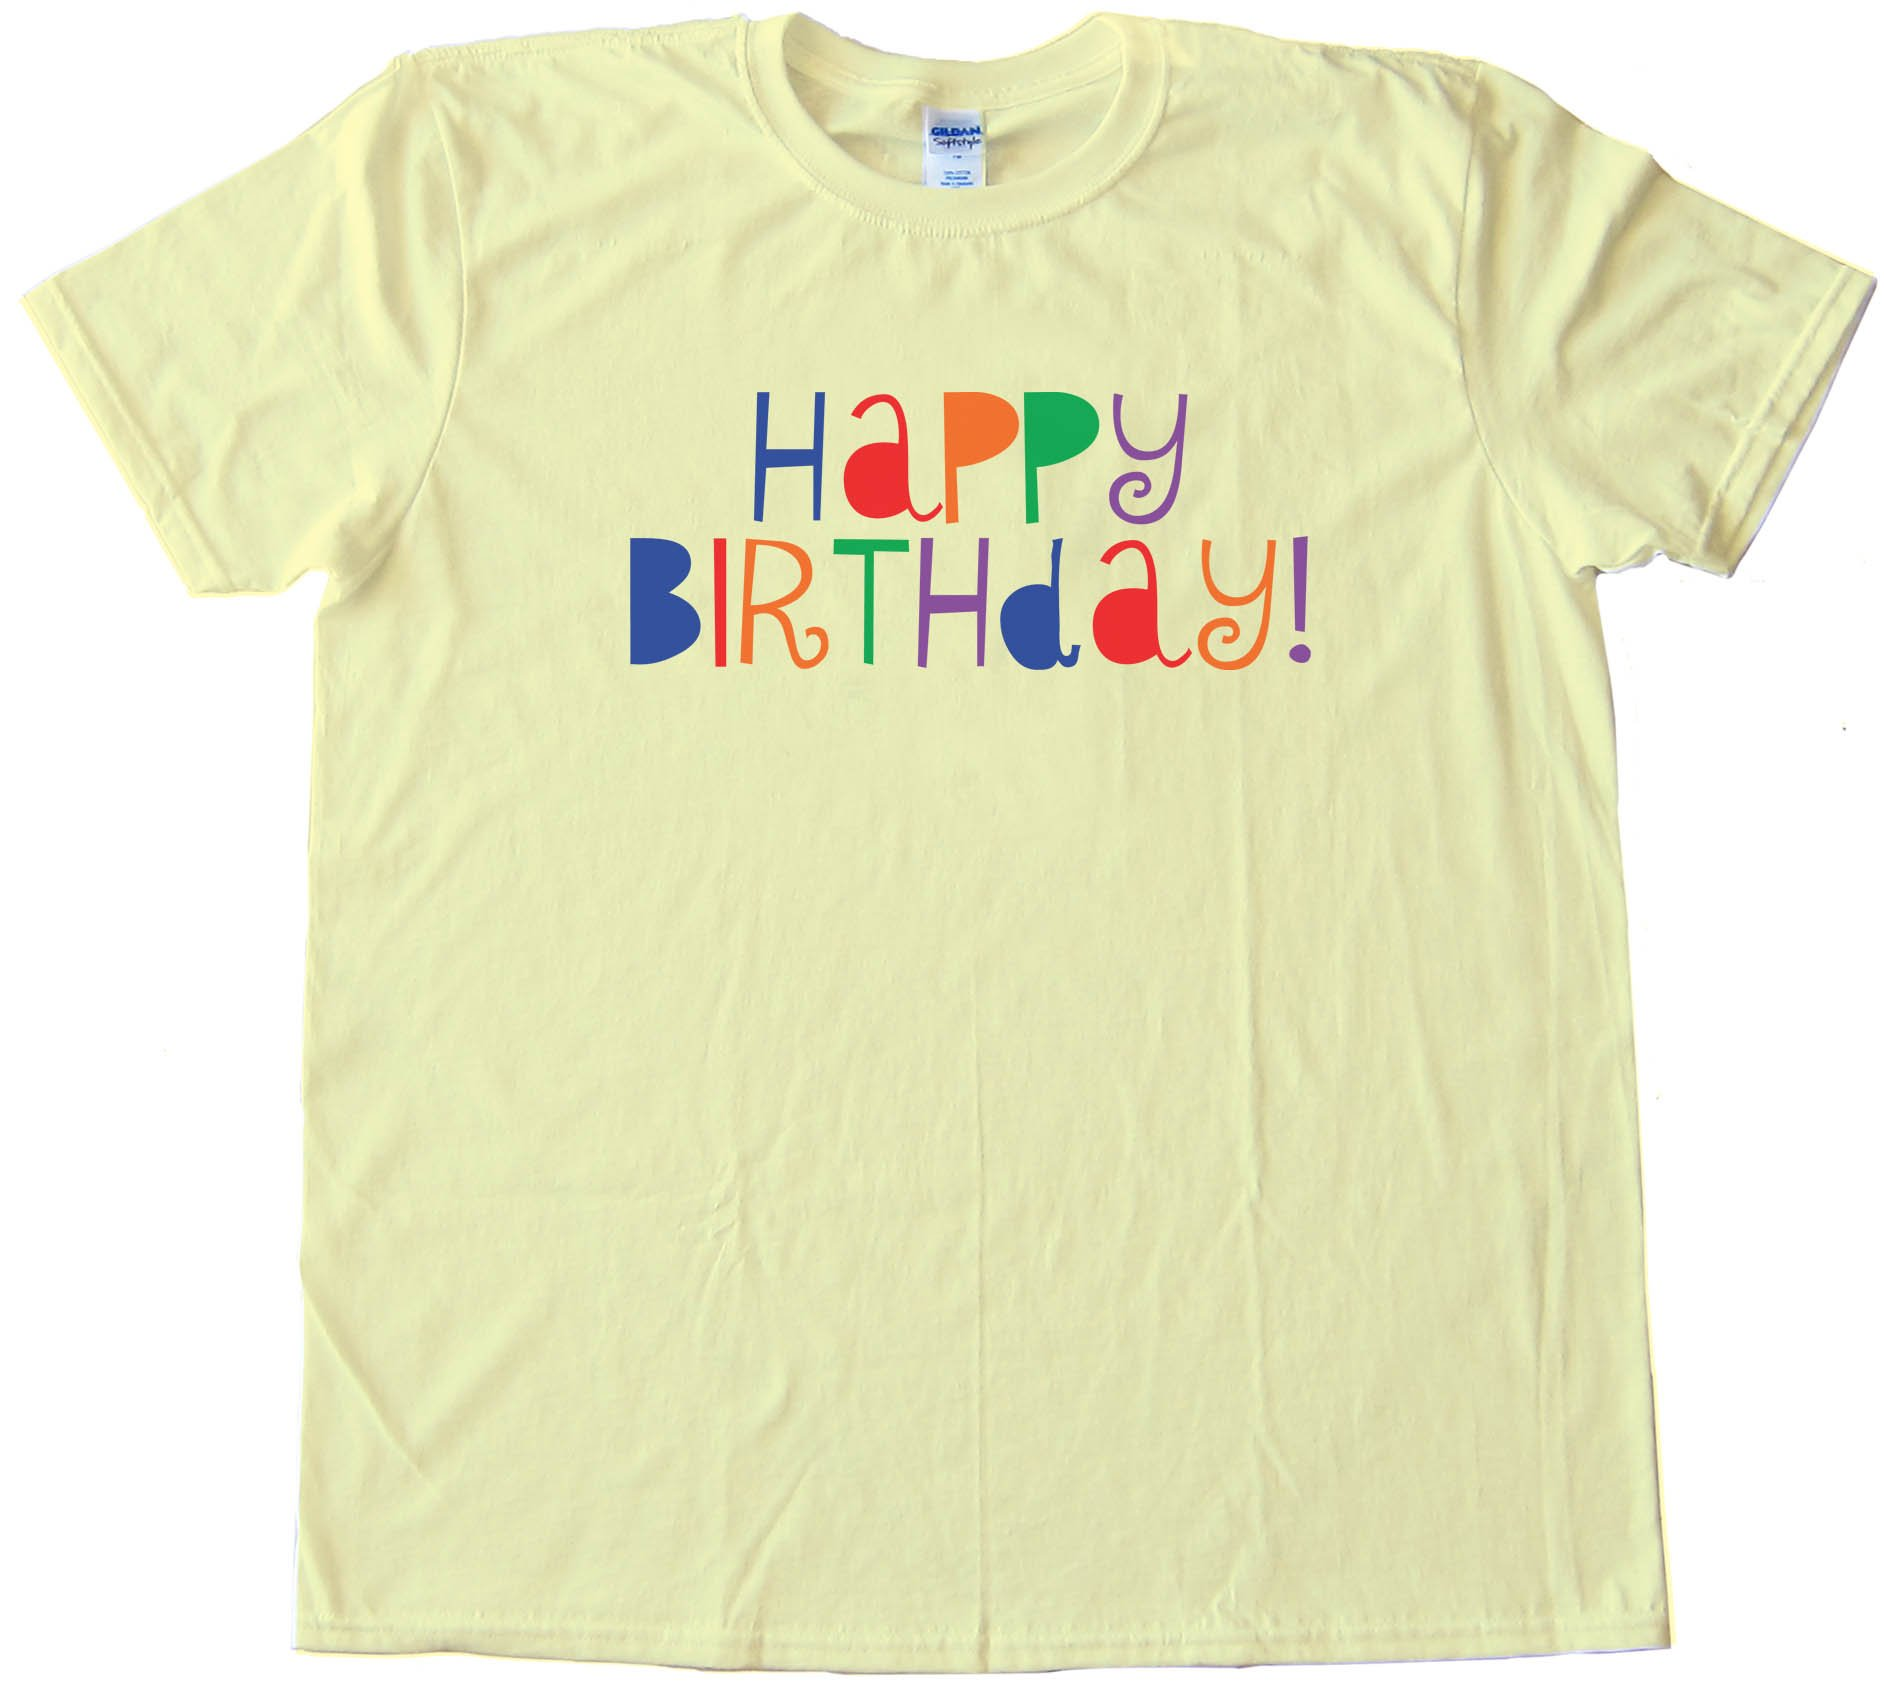 Happy Birthday With Color - Tee Shirt